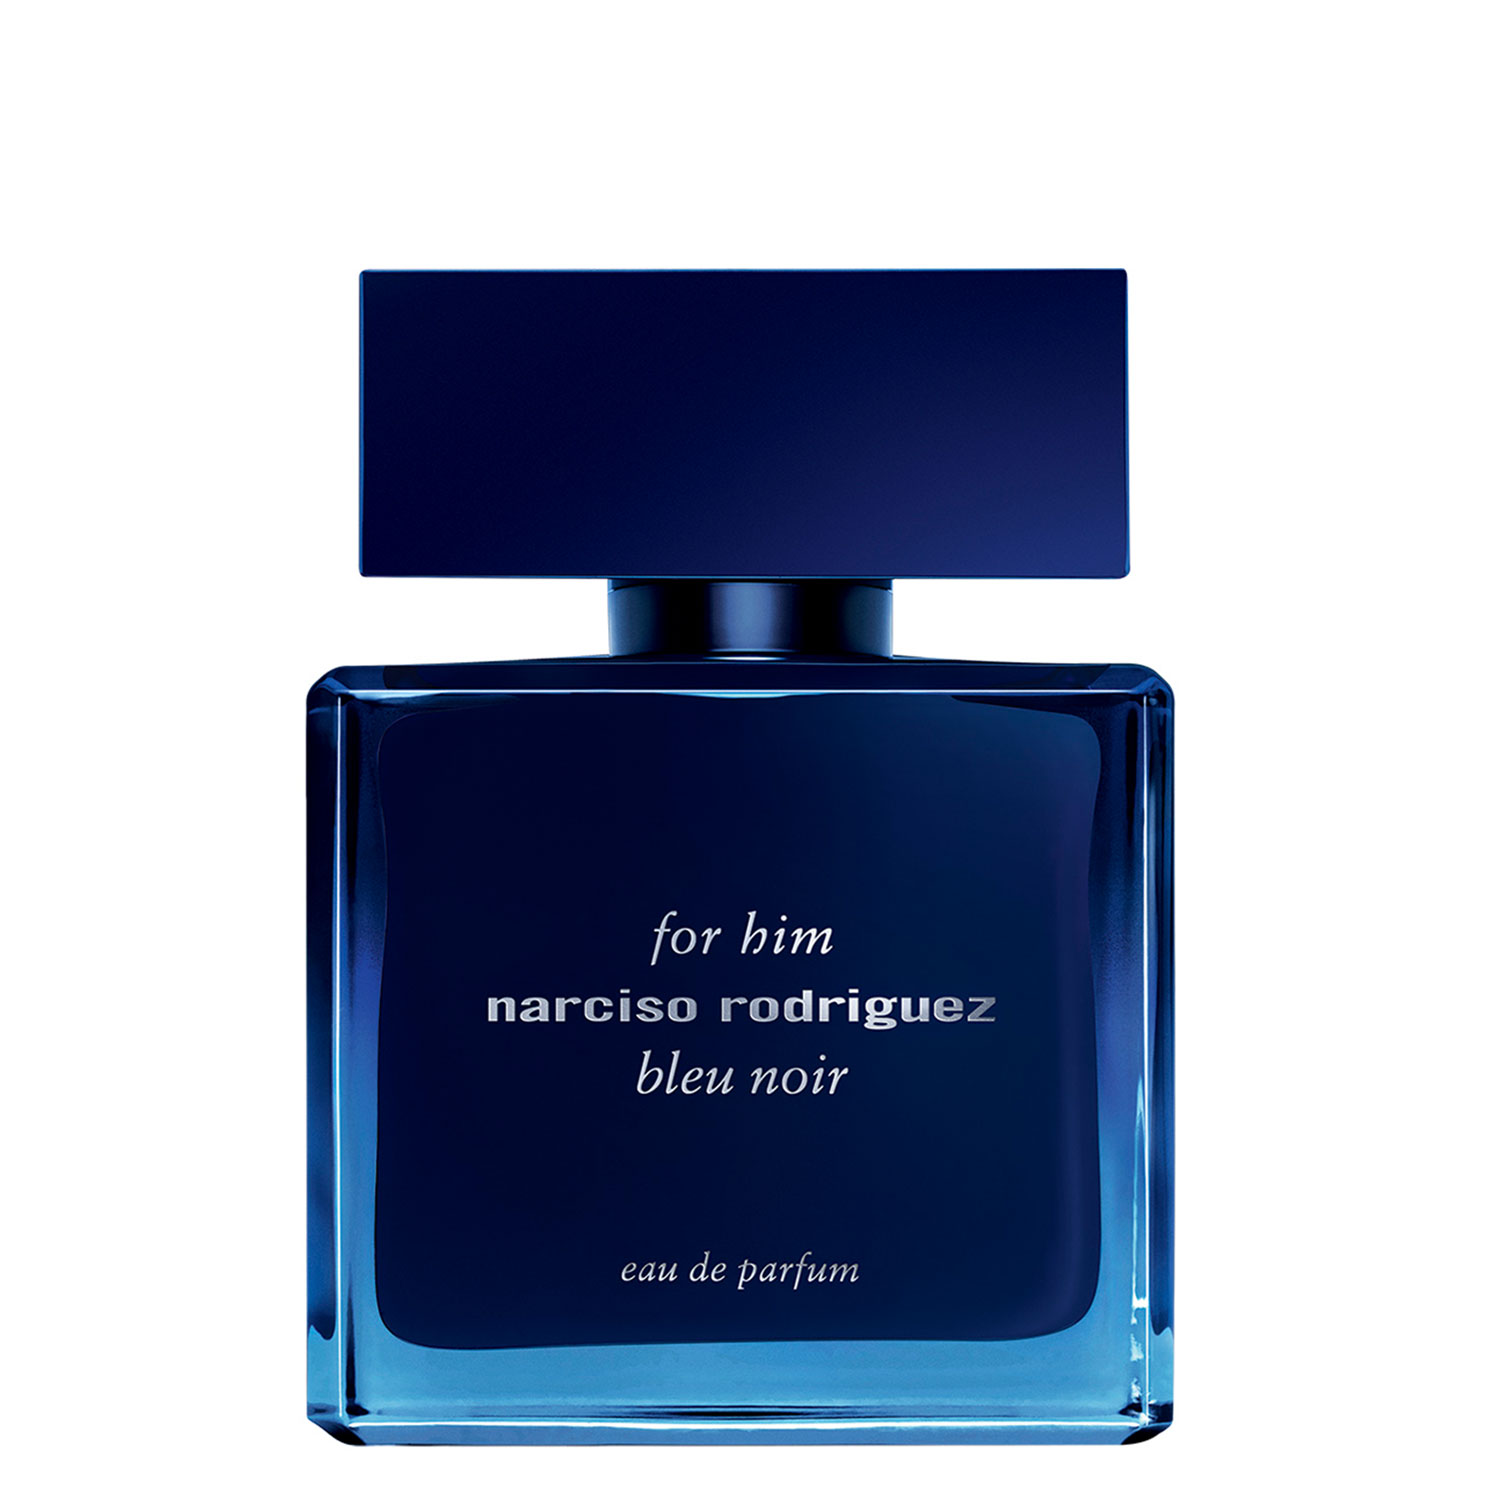 Narciso - For Him Bleu Noir Eau de Parfum